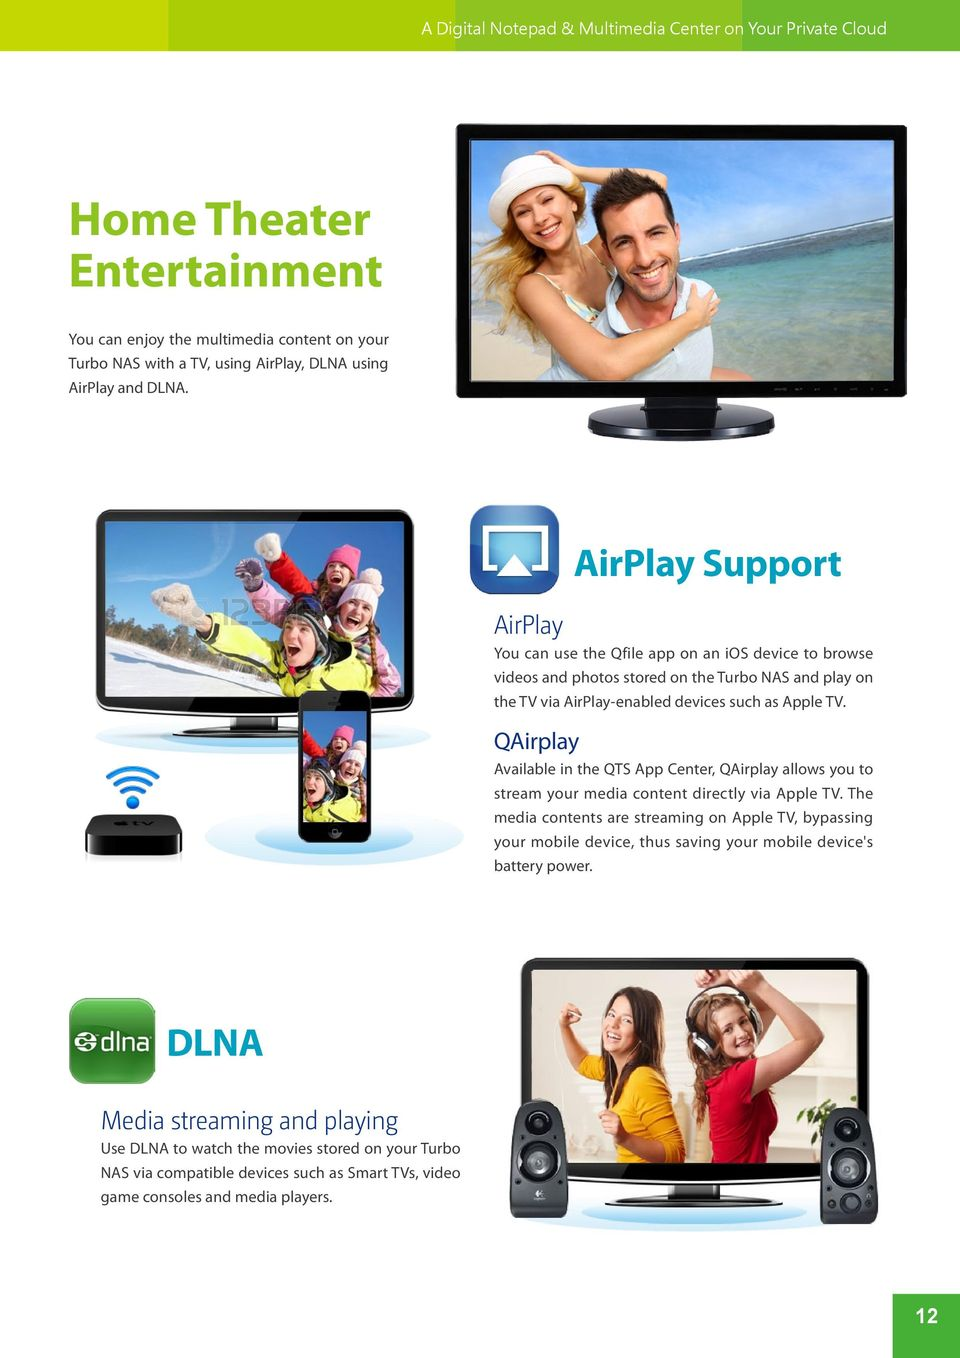 QAirplay Available in the QTS App Center, QAirplay allows you to stream your media content directly via Apple TV.